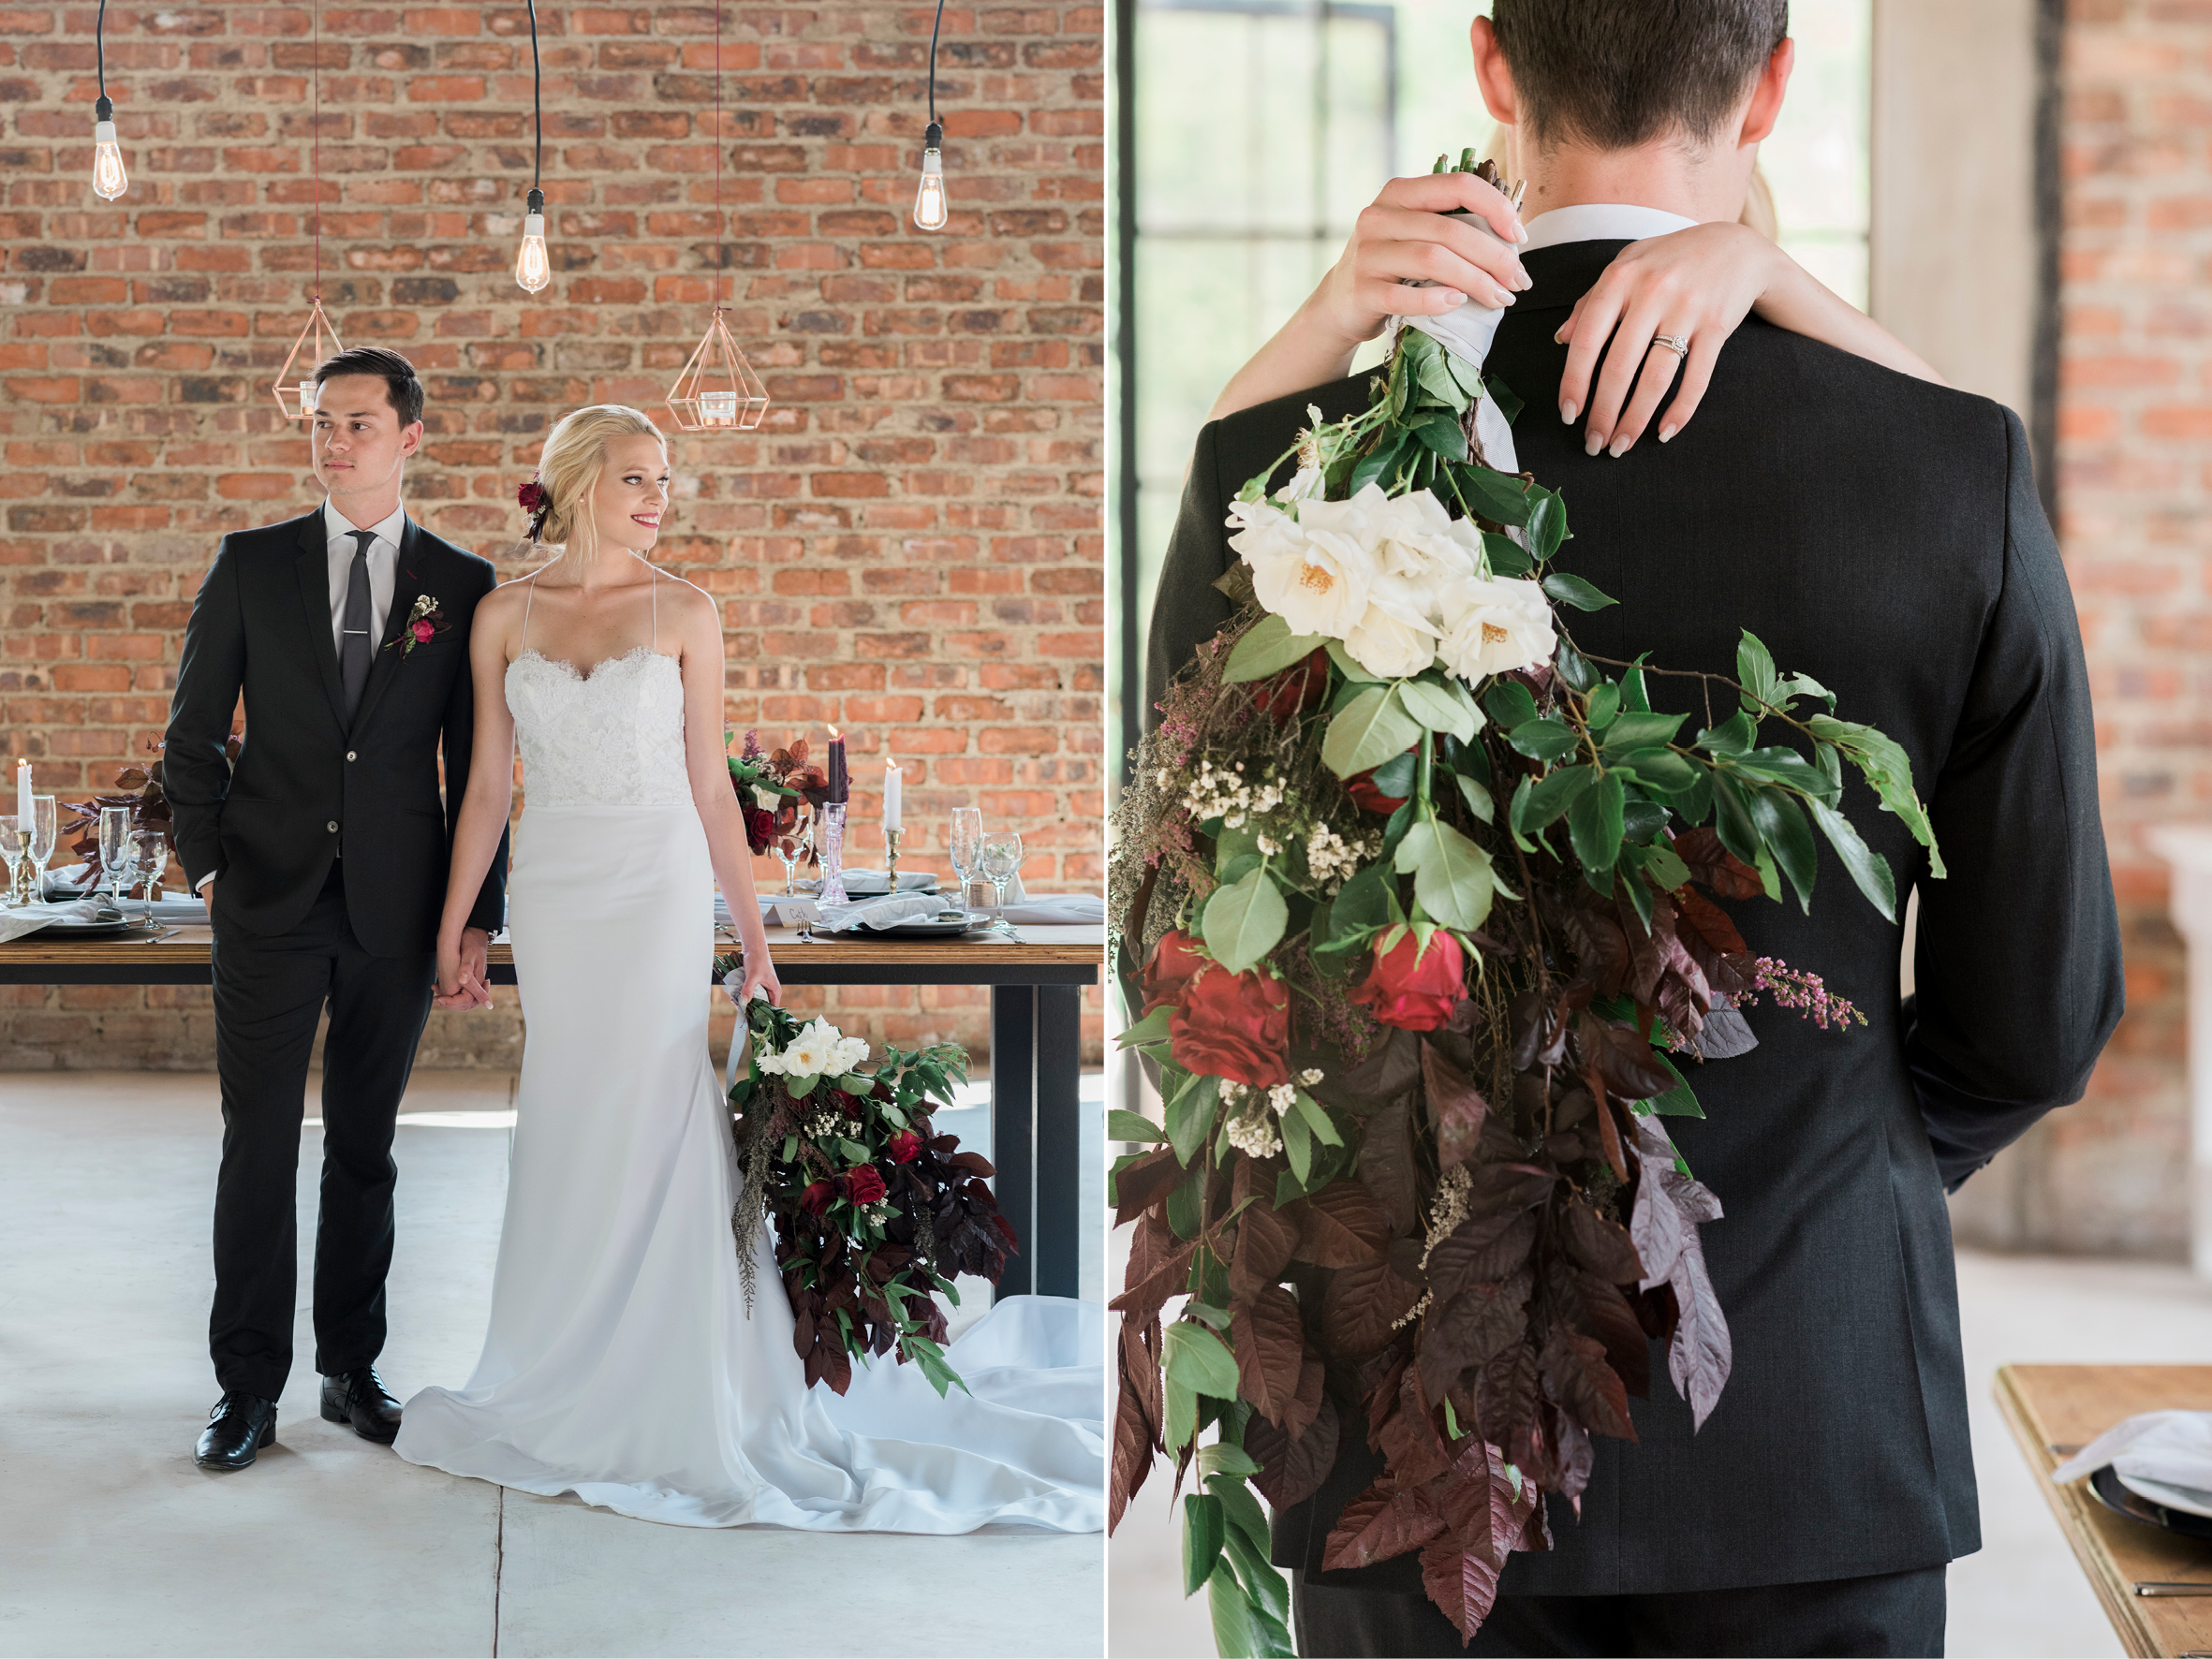 BronwynAlyson_Wedding_Styled shoot Industrial Modernism_17.jpg